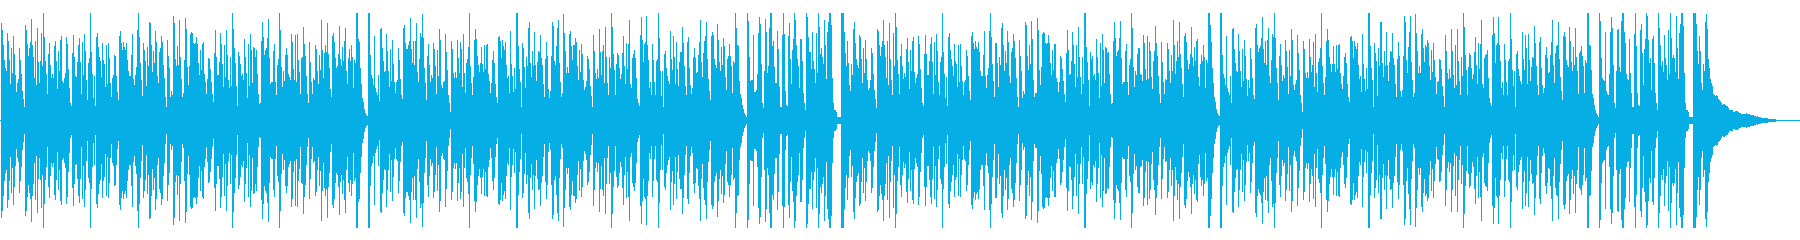 Heartwarming cute and blurry feeling's reproduced waveform